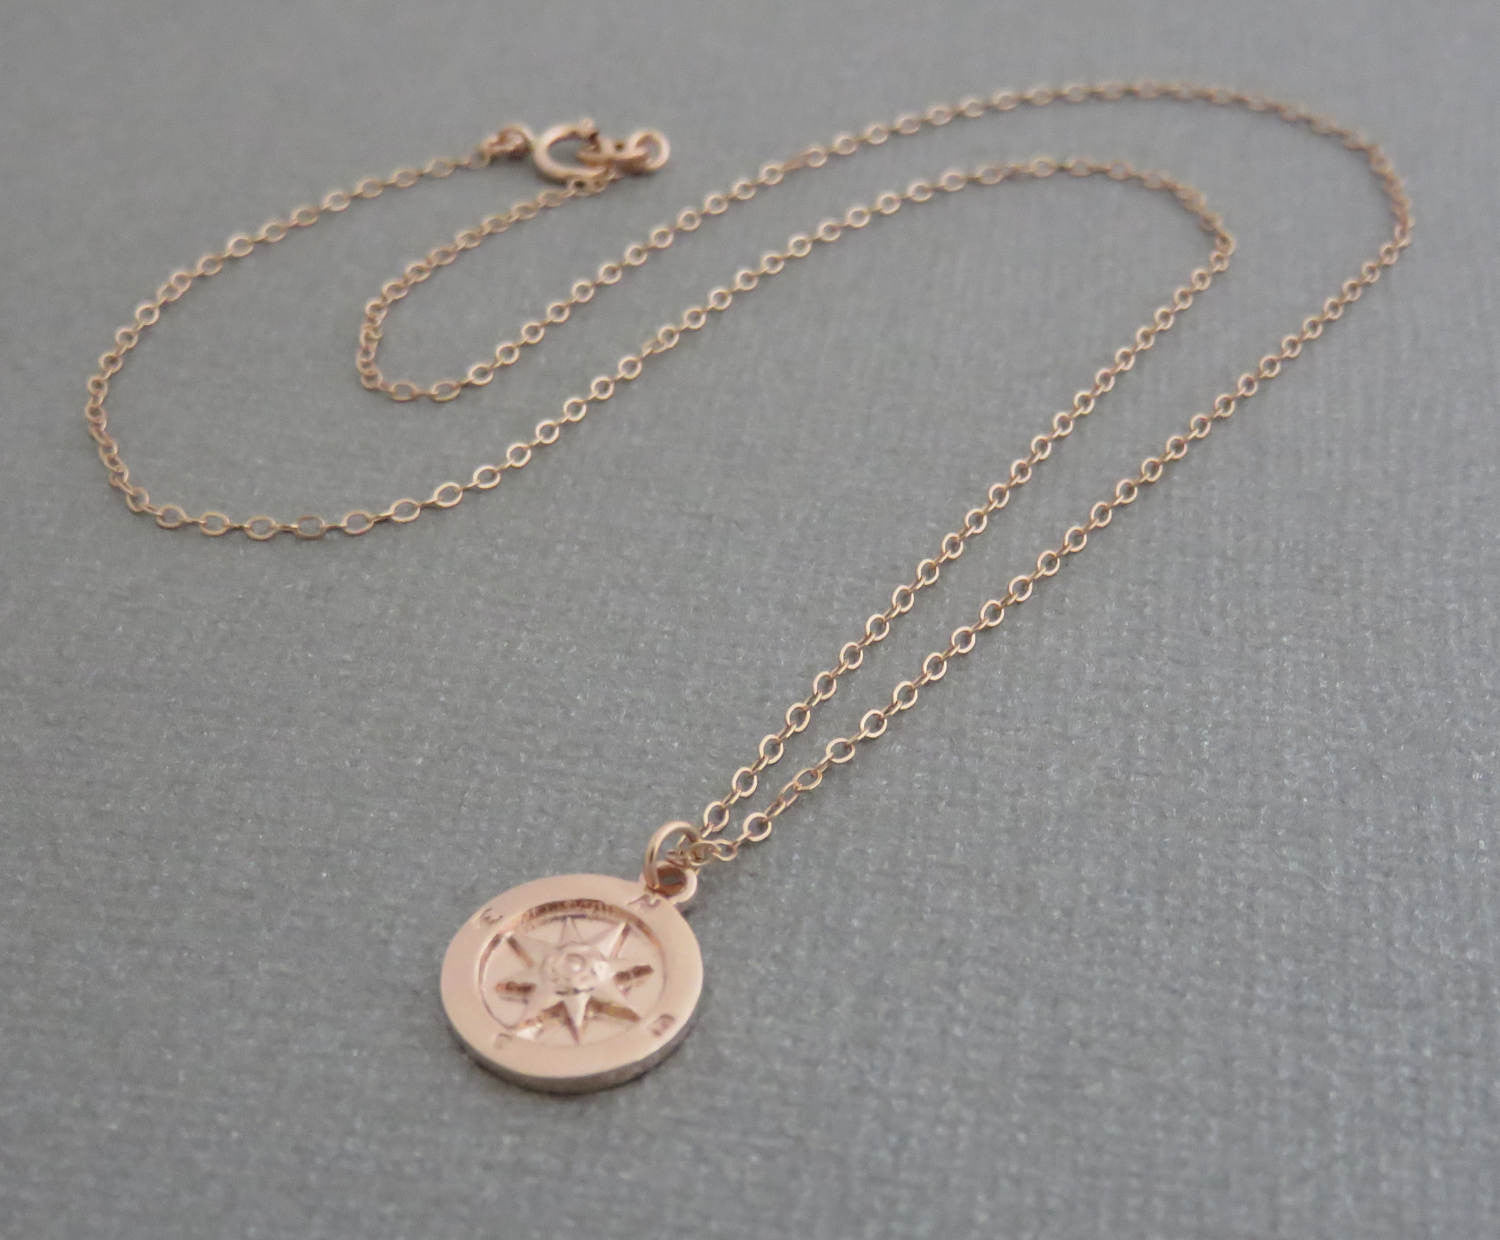 jewellery shop tilly sveaas compass fine gold necklace